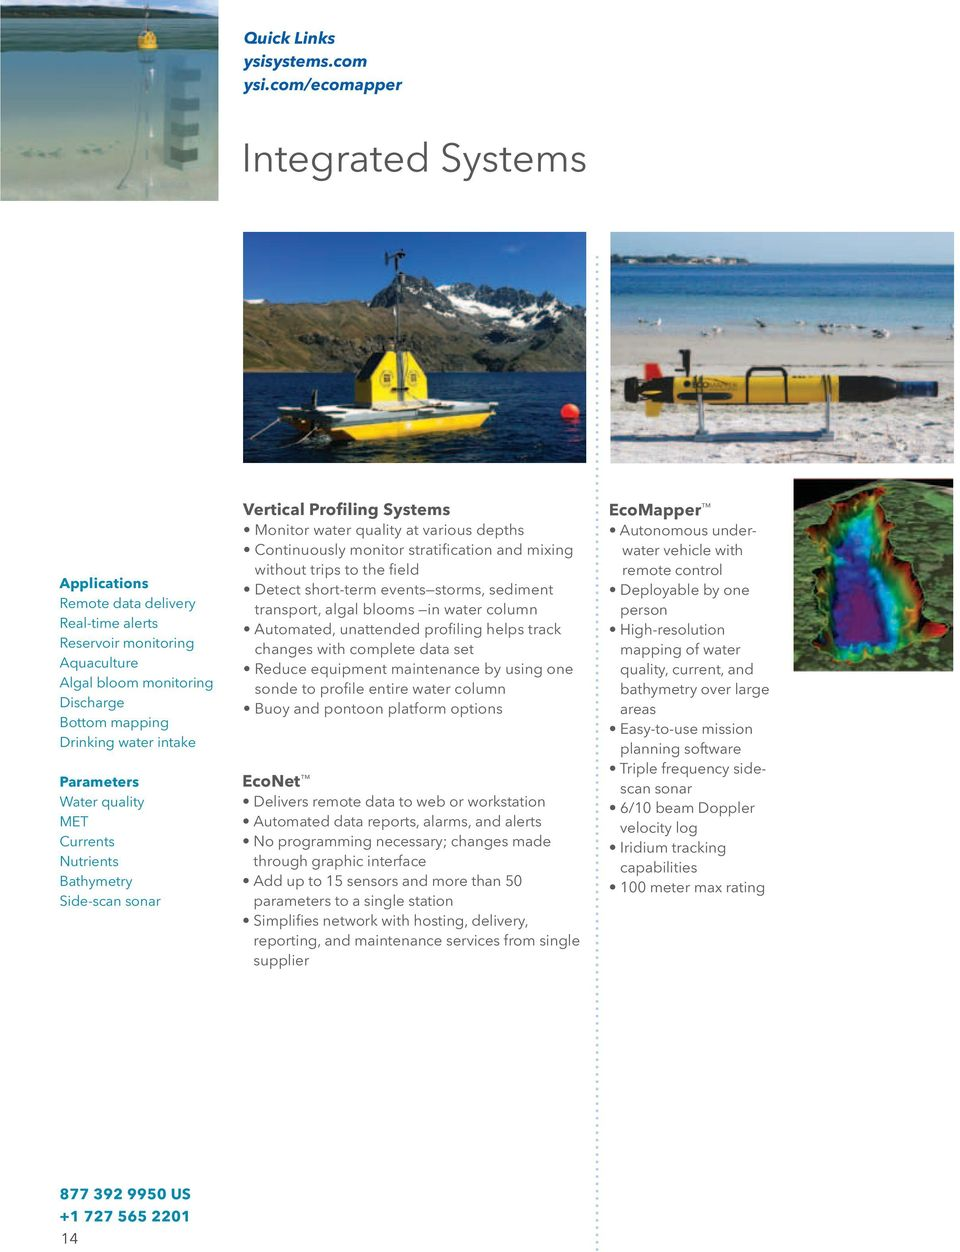 MET Currents Nutrients Bathymetry Side-scan sonar Vertical Profiling Systems Monitor water quality at various depths Continuously monitor stratification and mixing without trips to the field Detect